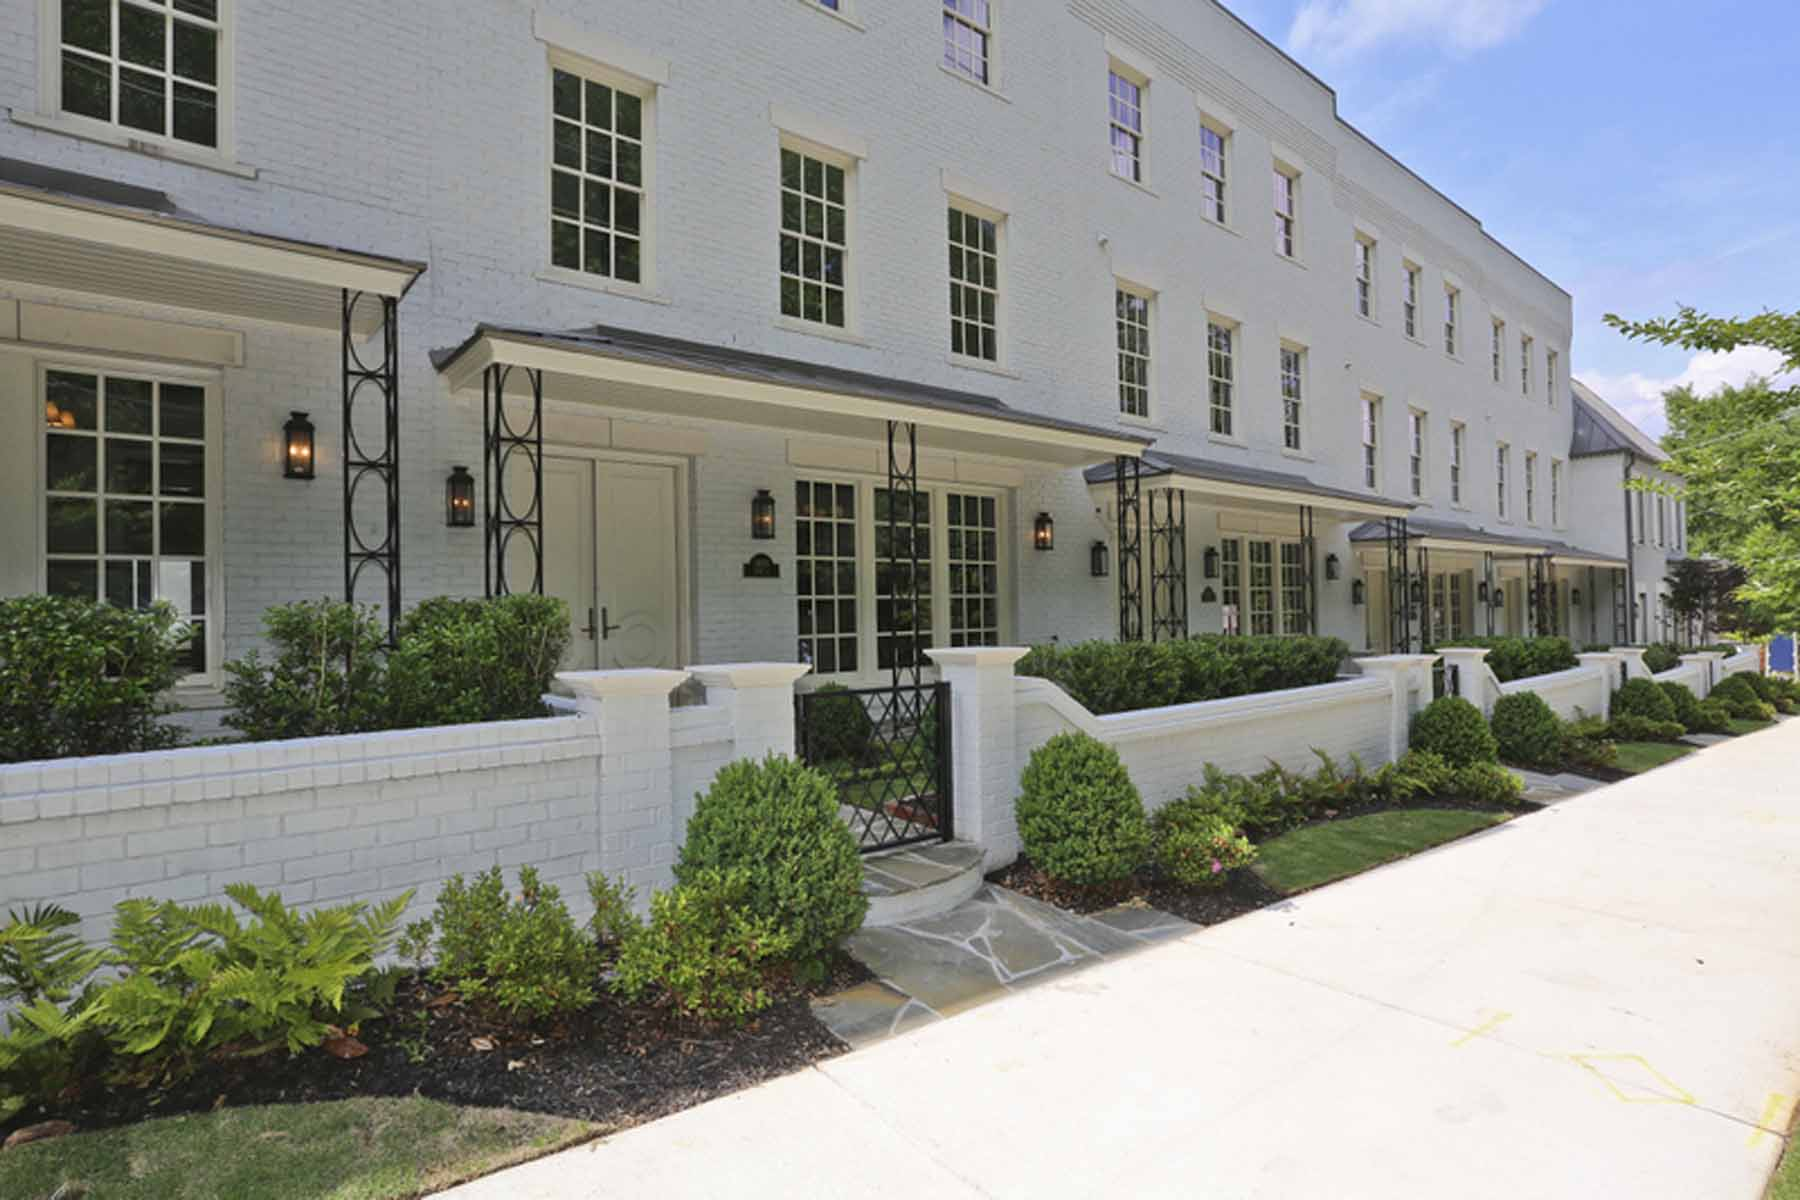 Townhouse for Sale at BRAND NEW TOWNHOME BY MONTE HEWETT HOMES. 1400 Piedmont Avenue NE No. 4 Atlanta, Georgia, 30309 United States